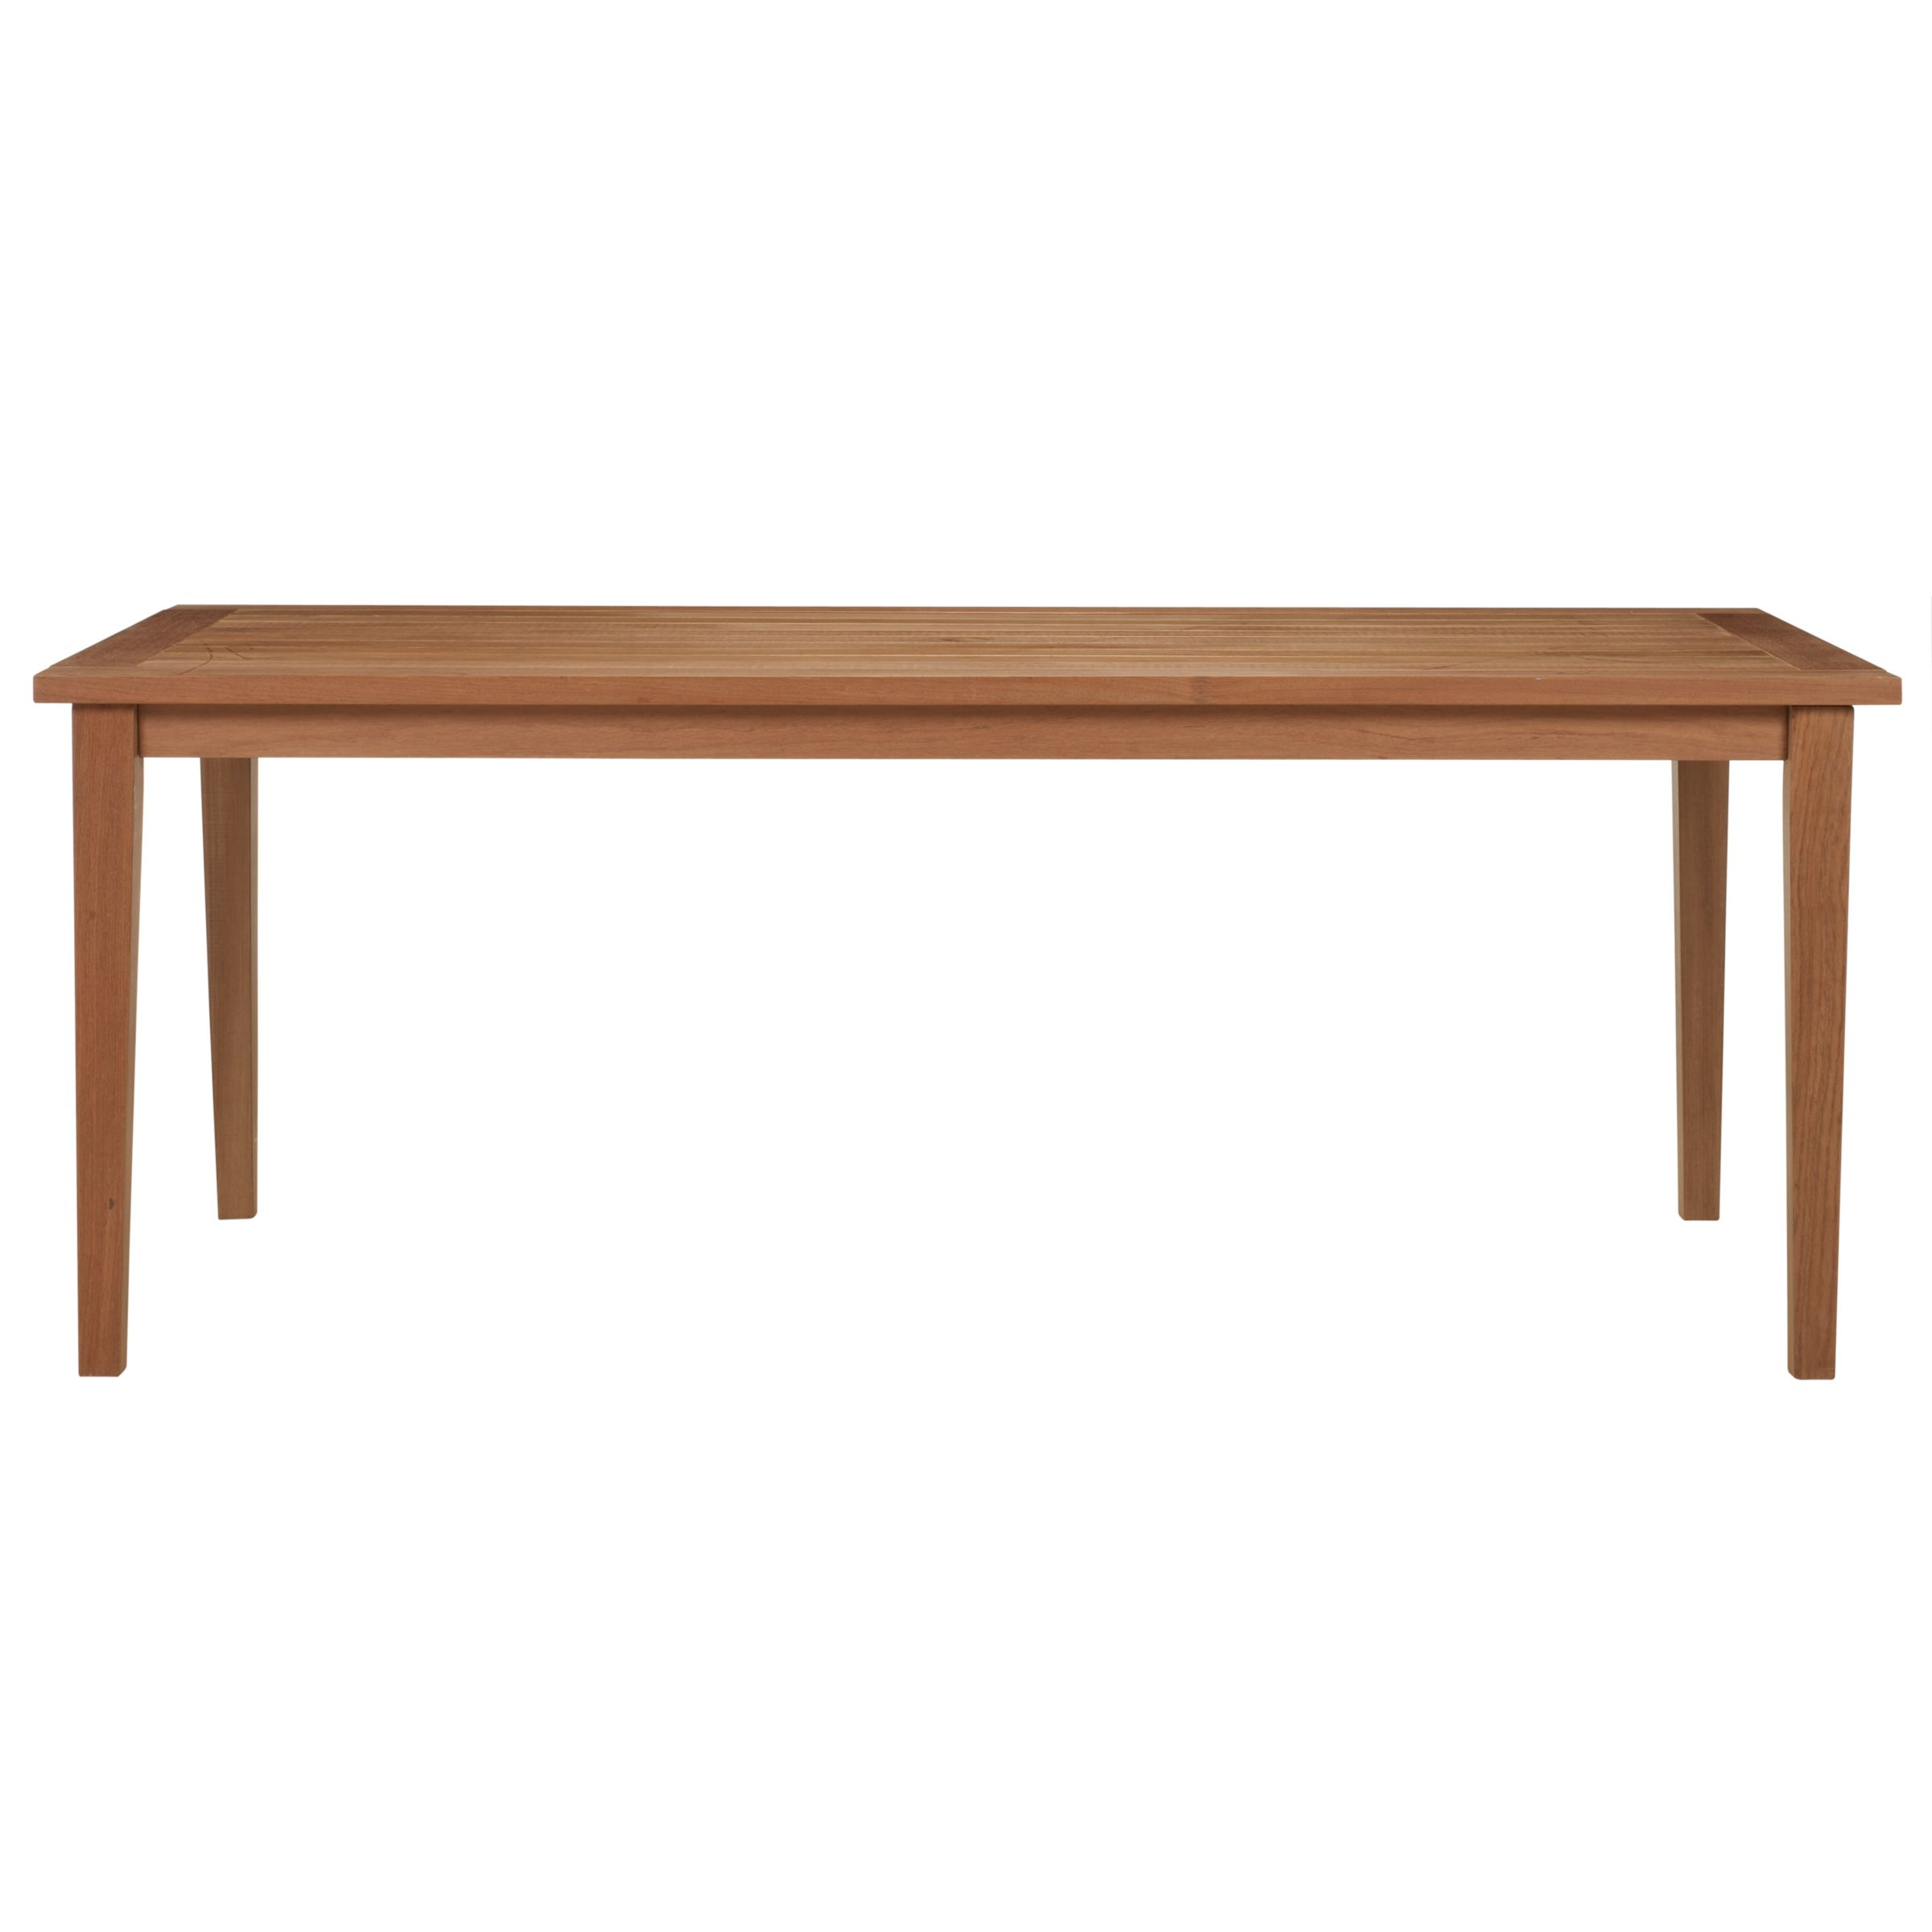 John Lewis Ripley Garden Dining Table review compare  : 230727872 from www.comparestoreprices.co.uk size 2400 x 2400 jpeg 108kB